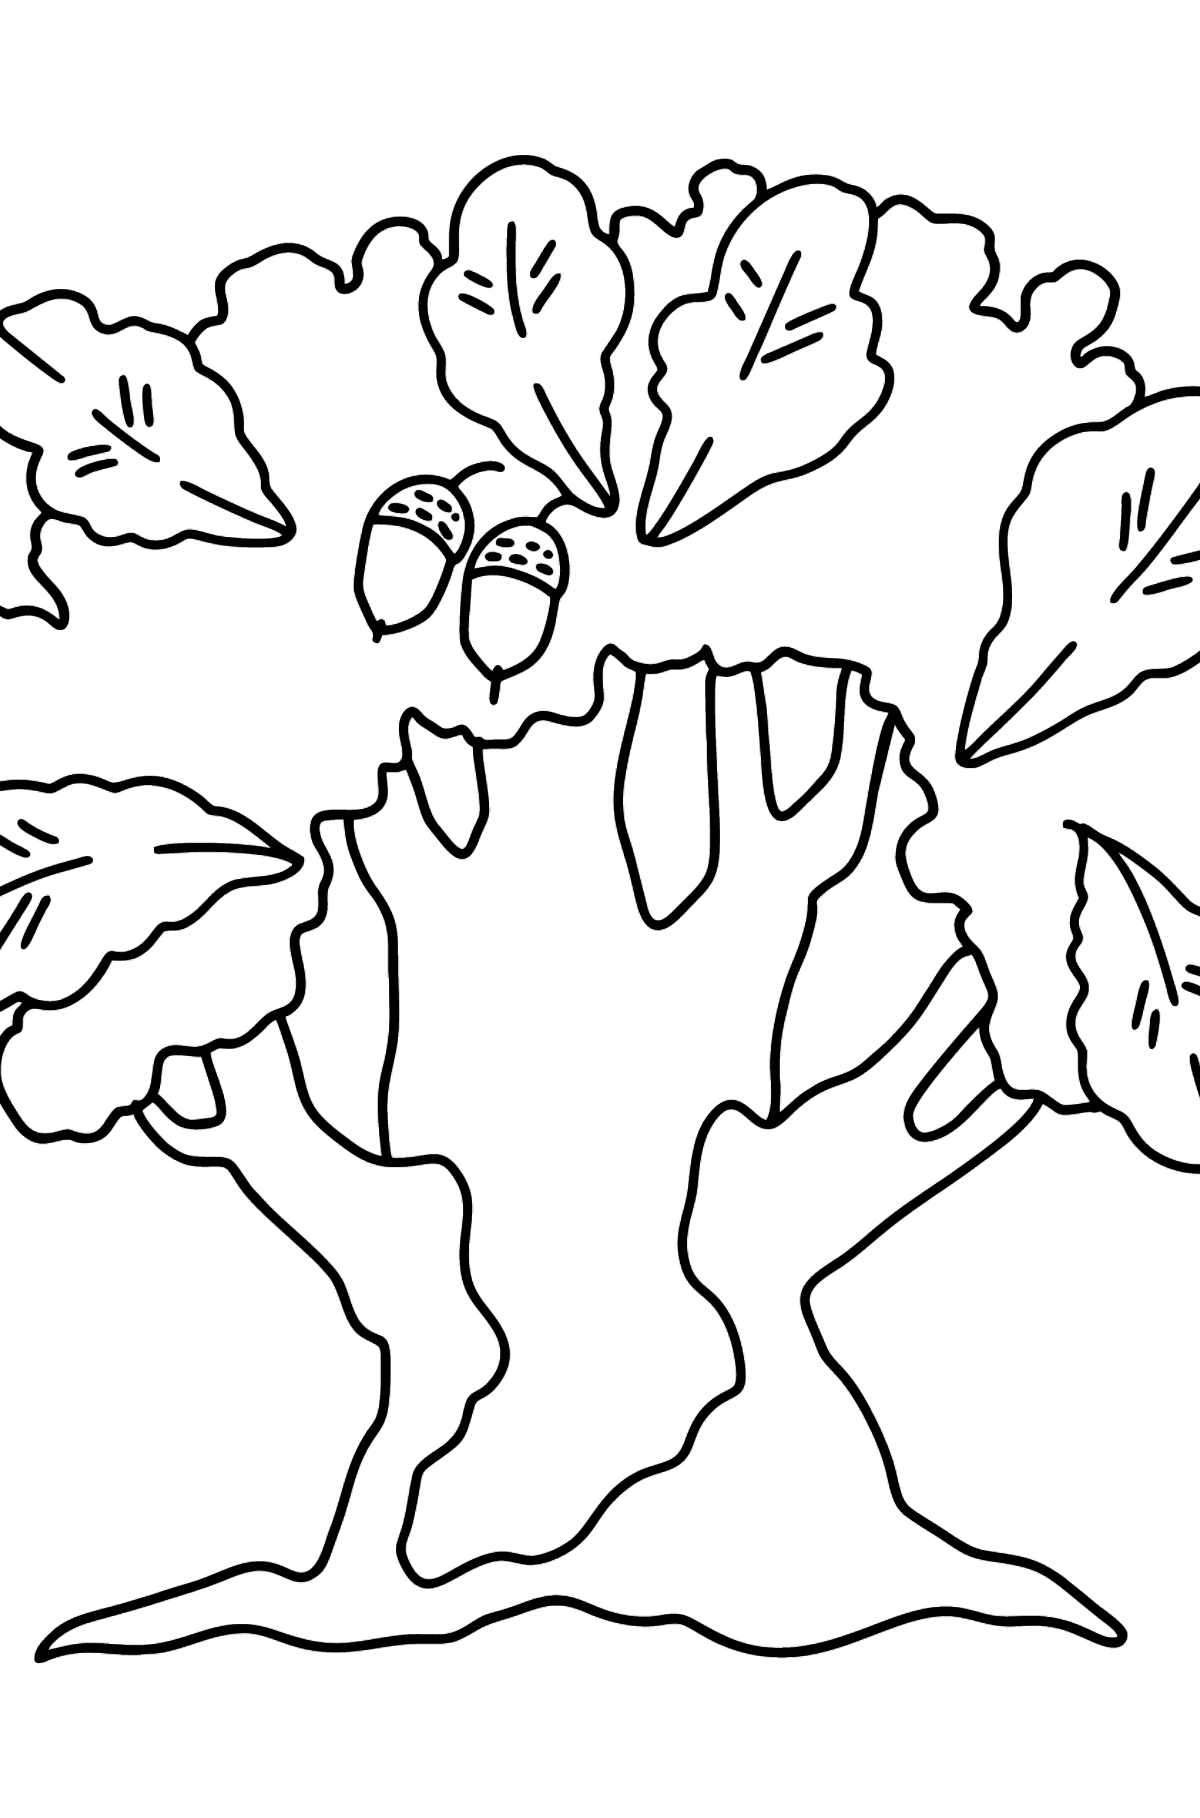 Oak coloring page - Difficult - Coloring Pages for Kids